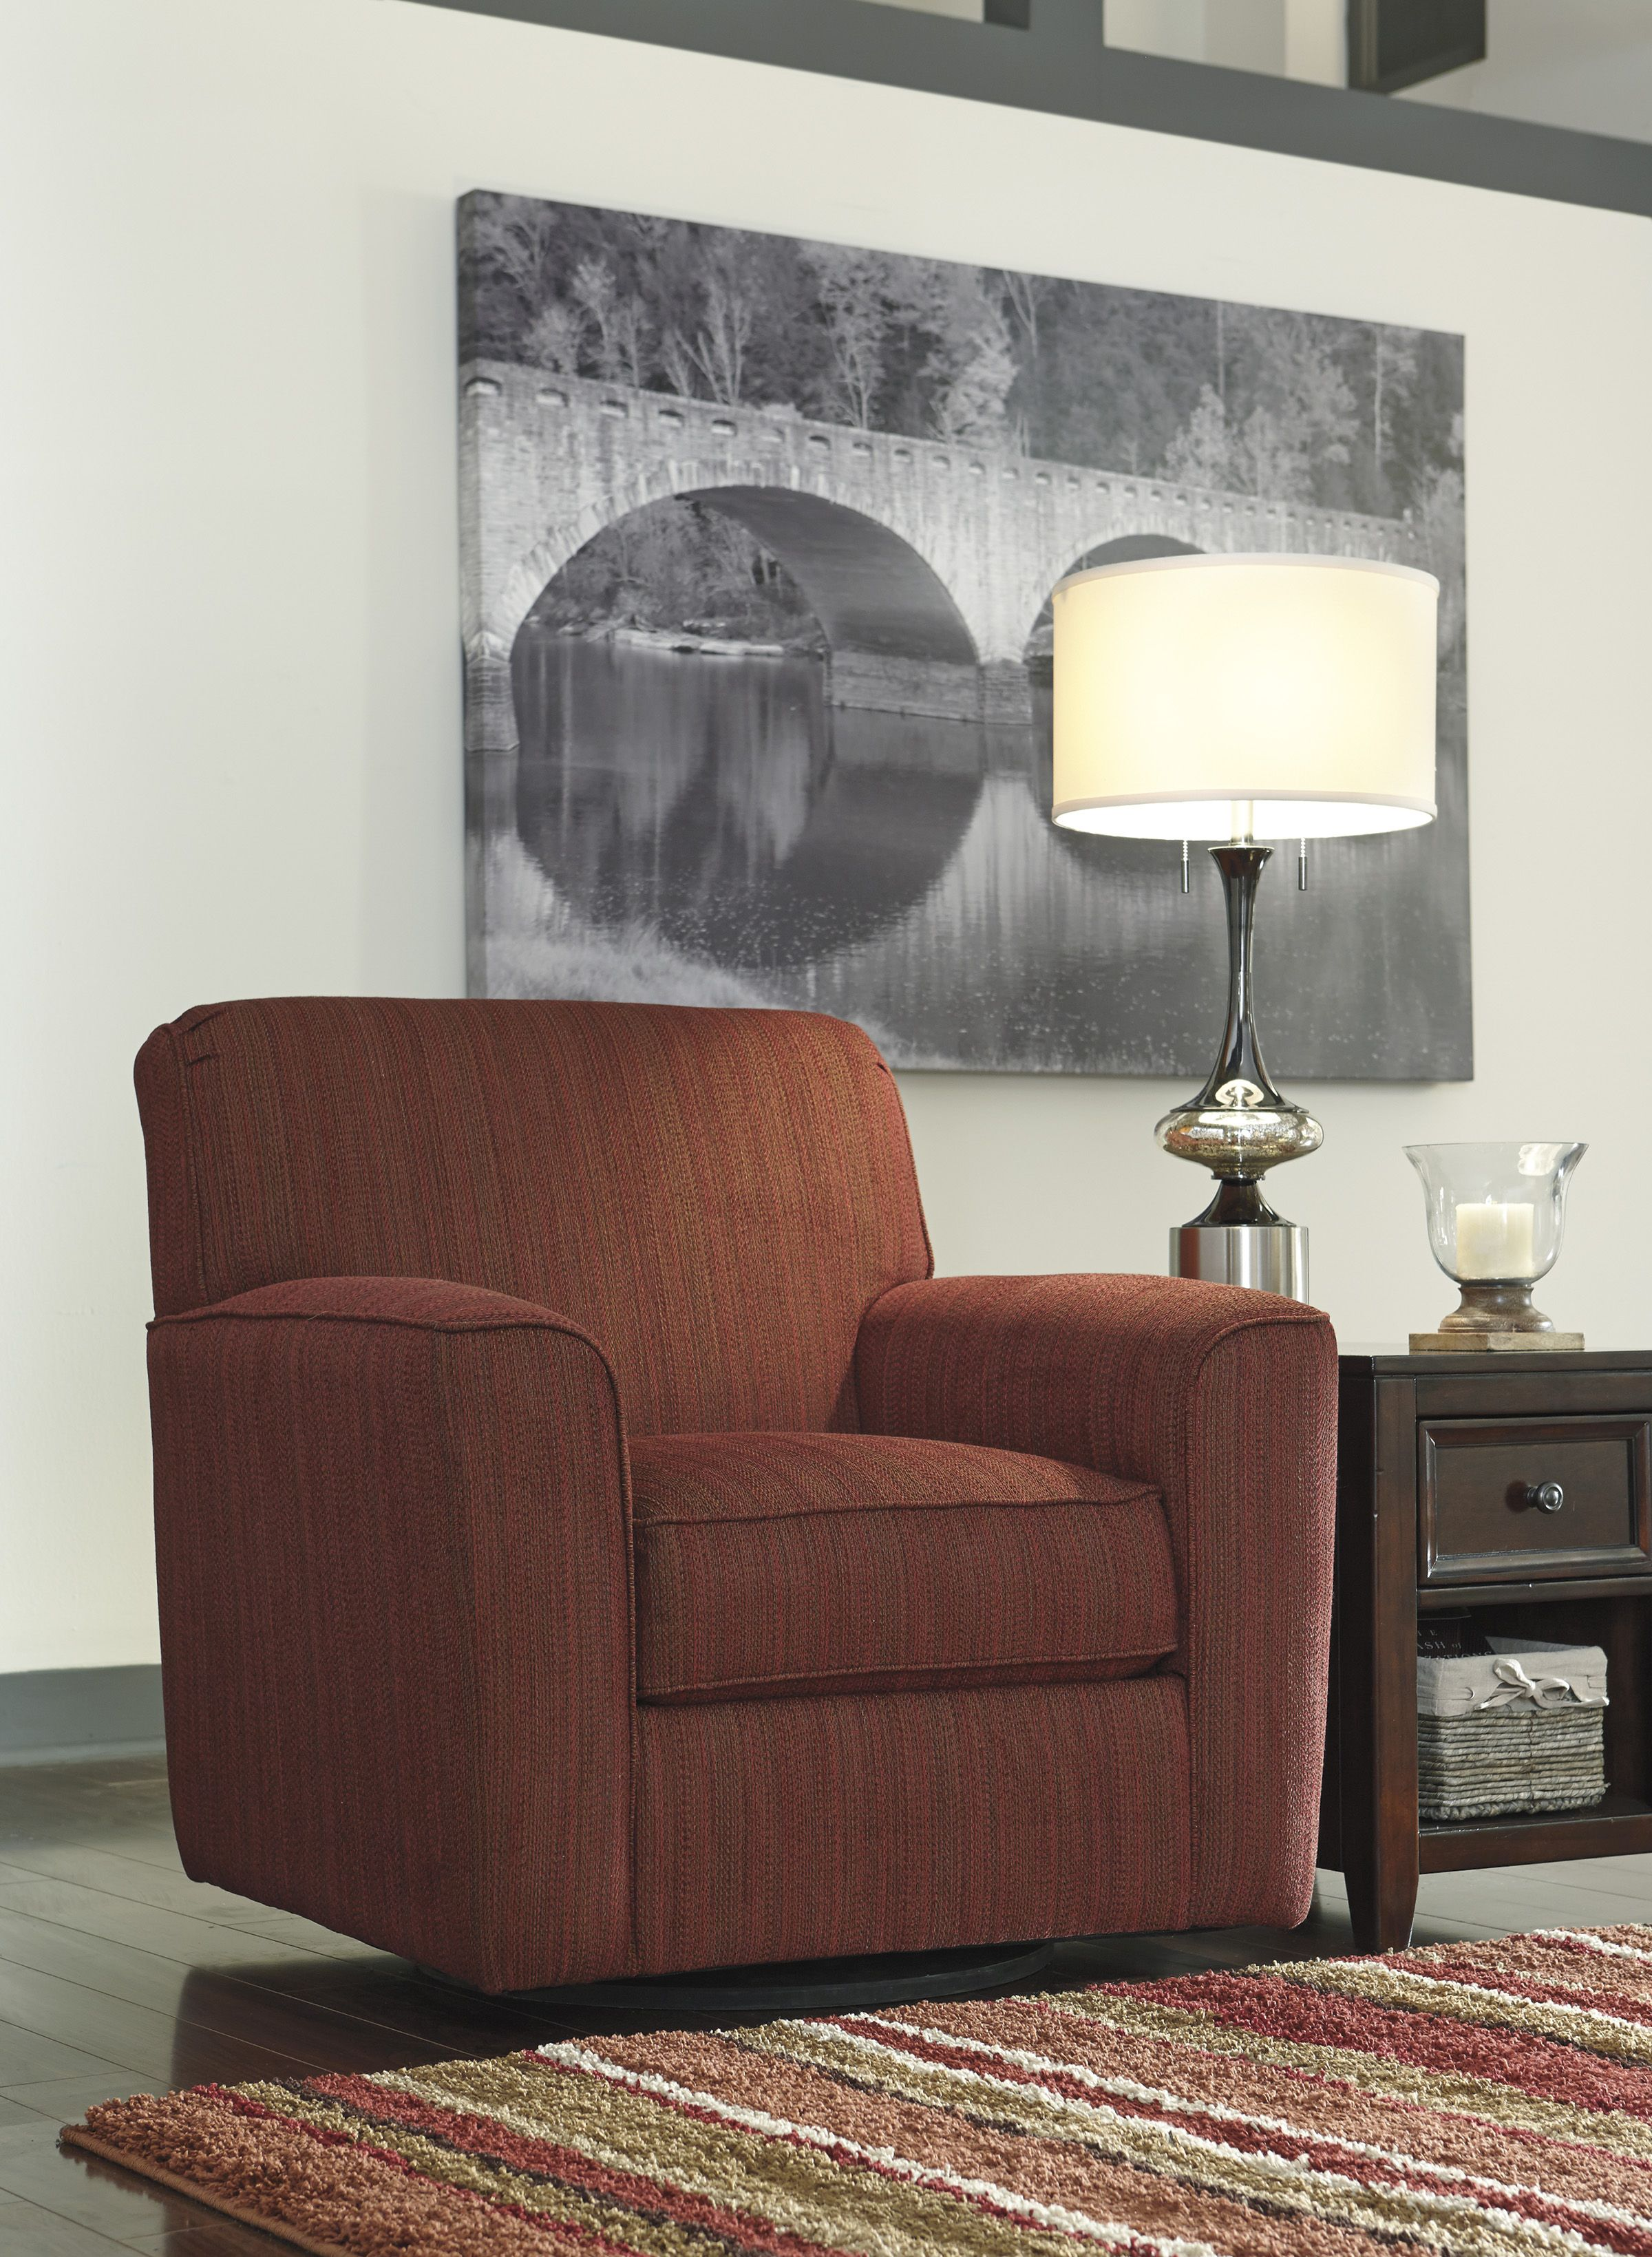 Walworth Patterned Accent Chair with Arms by Ashley Furniture at